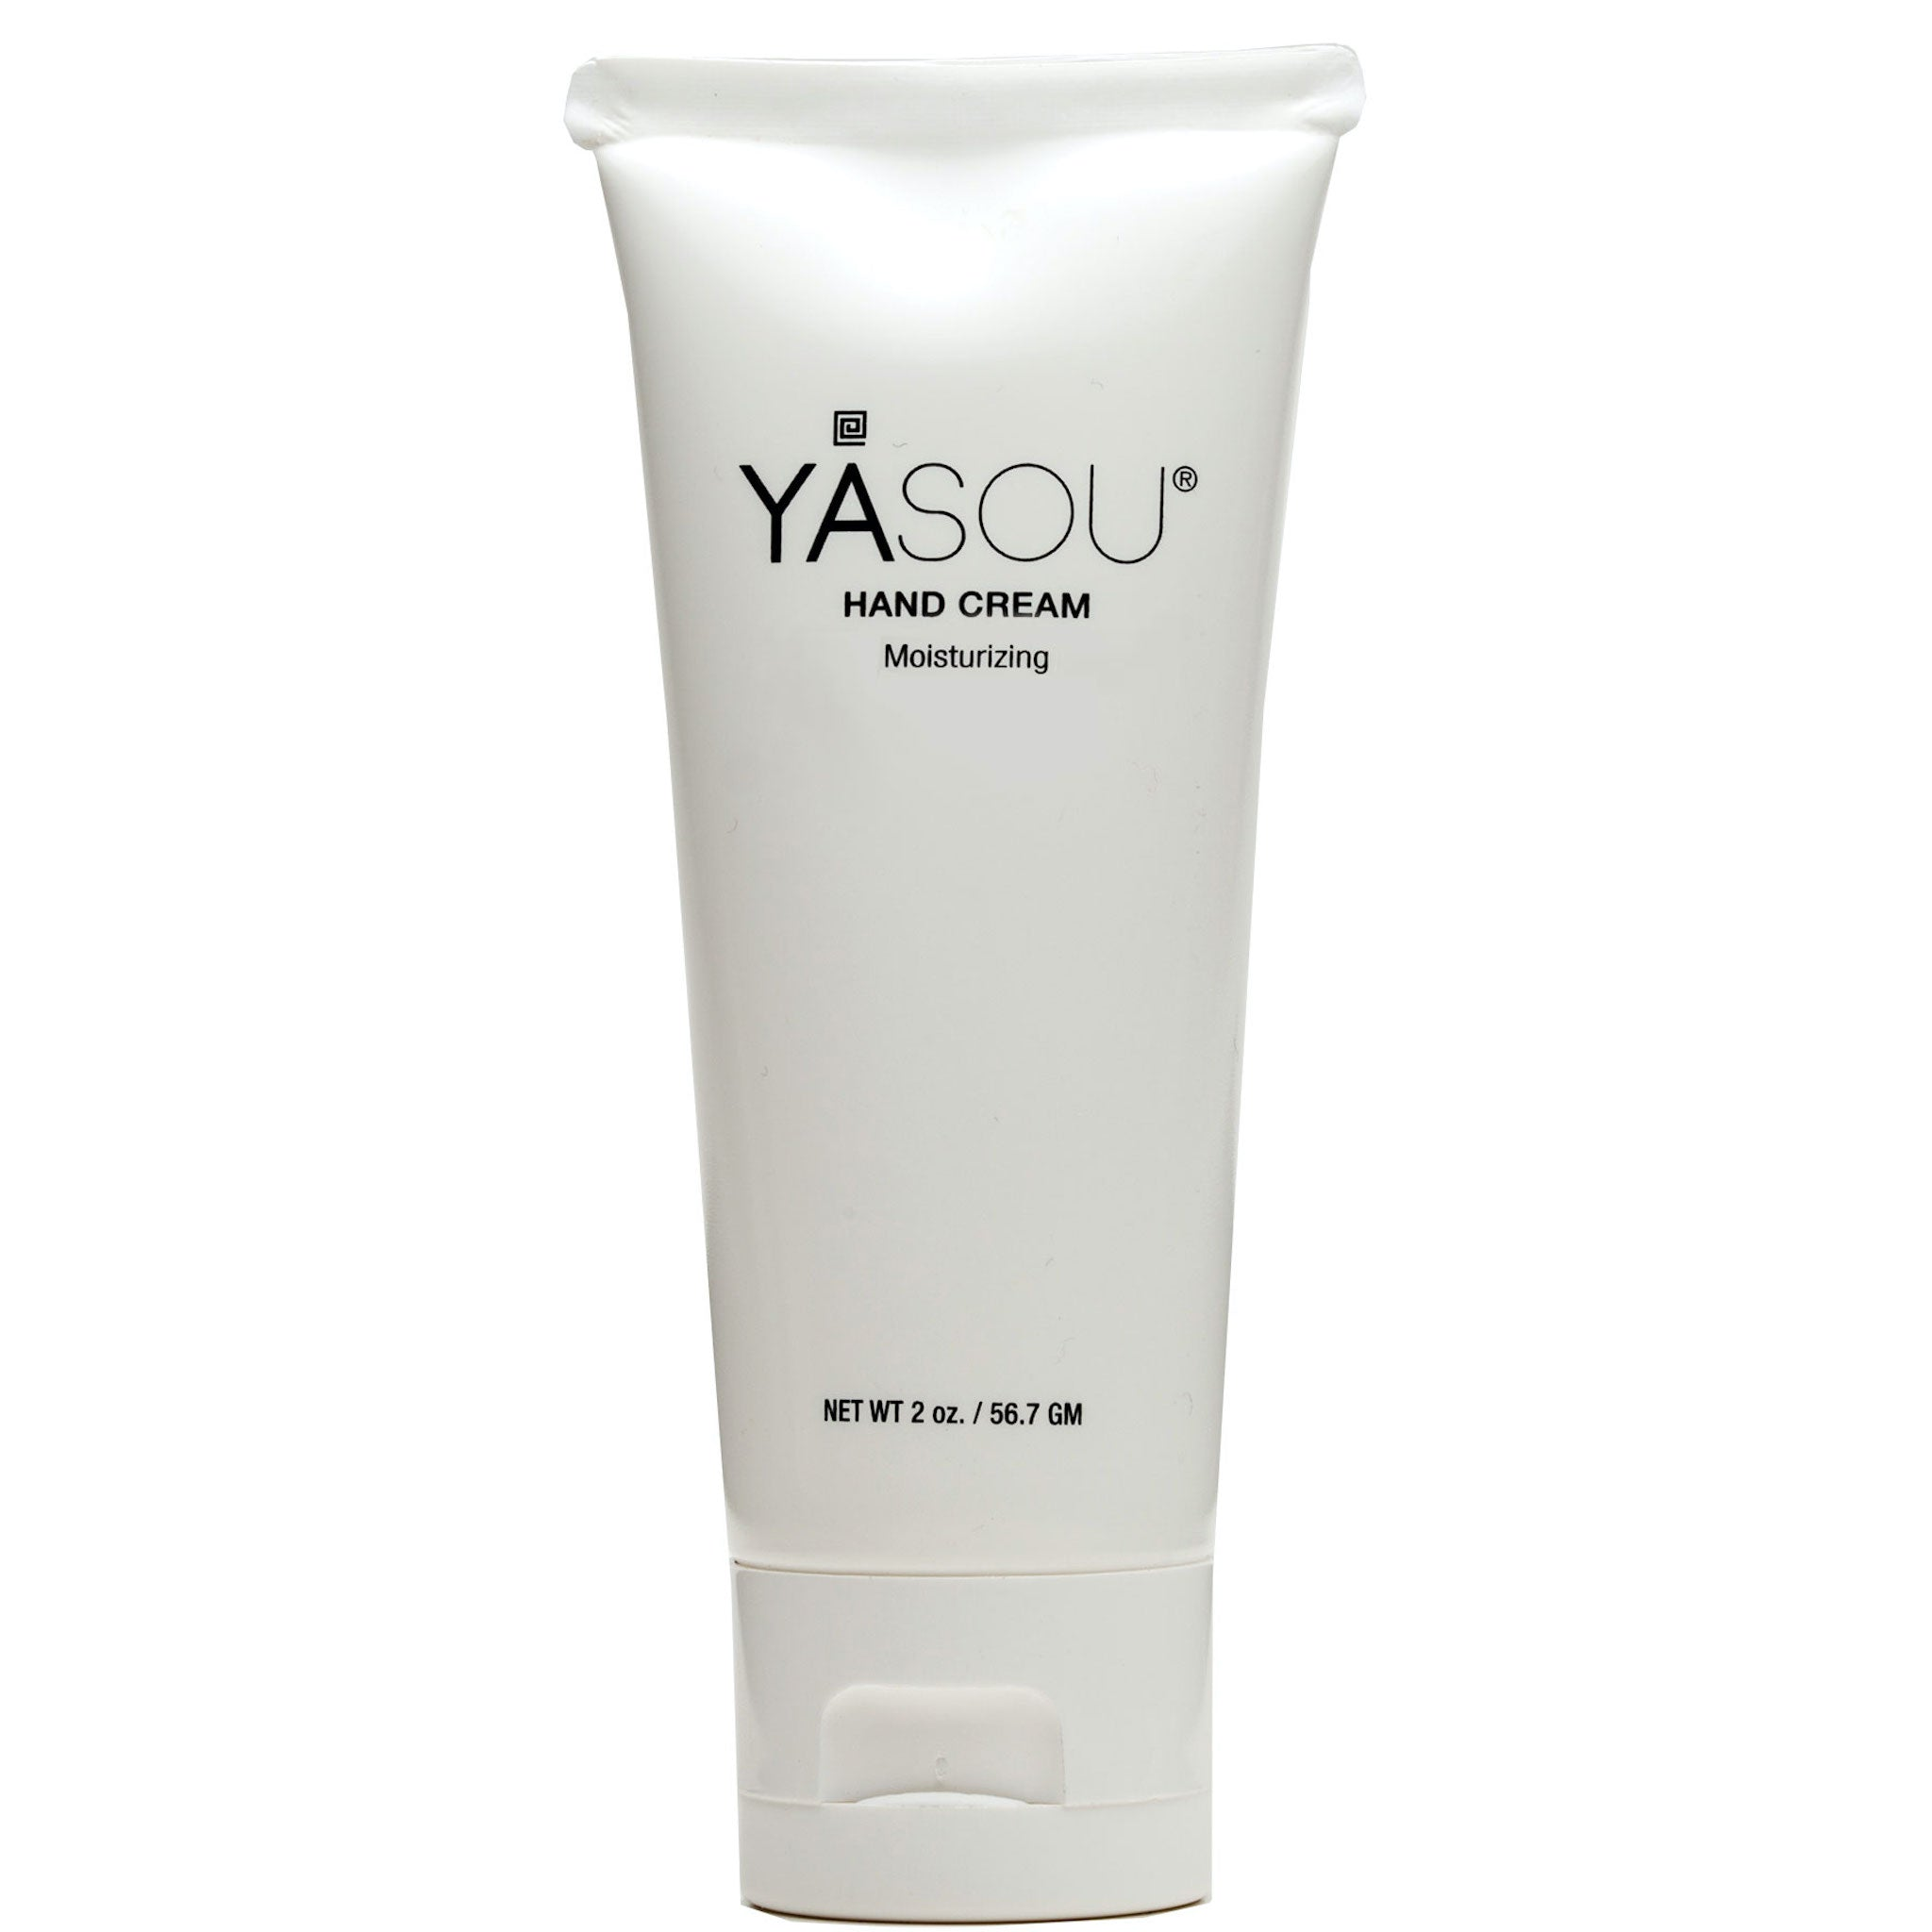 YASOU - Vegan Hand Cream - Essential Oils